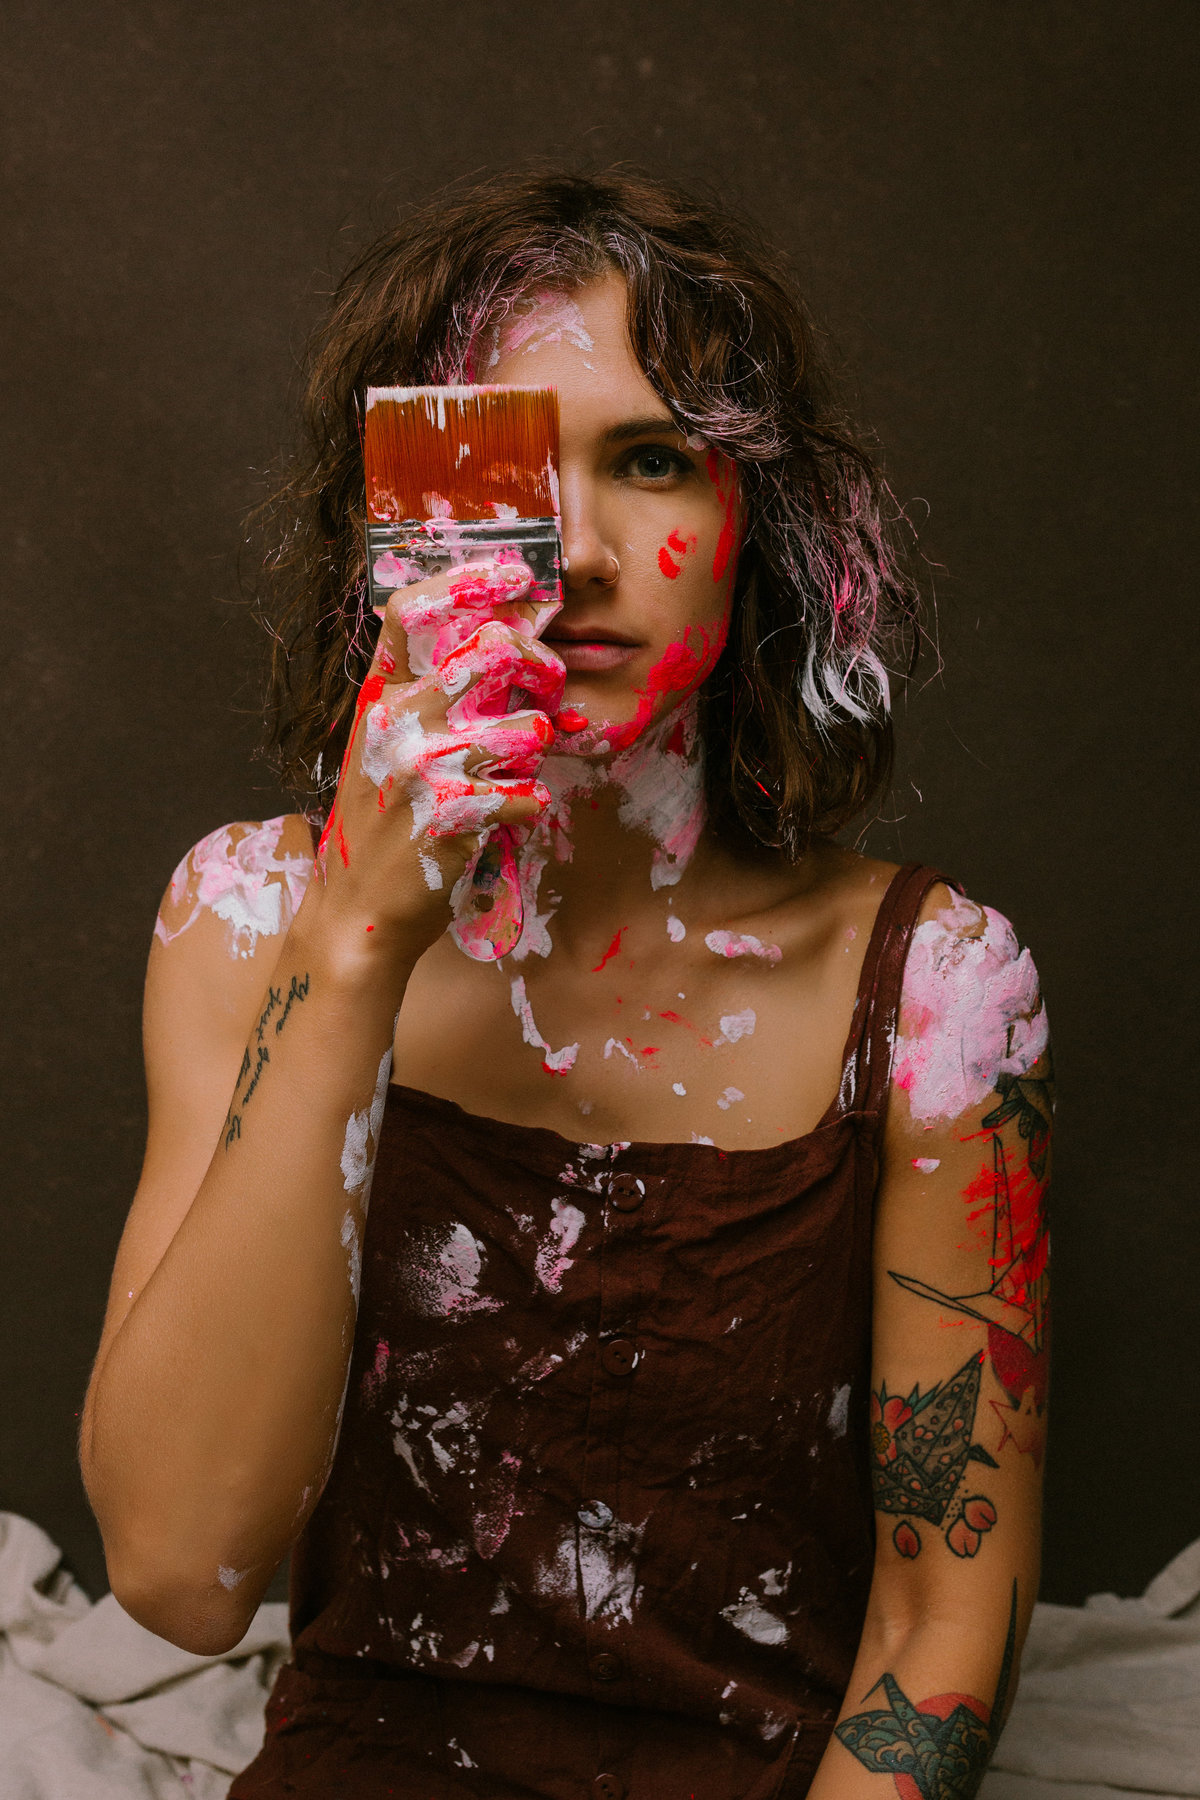 Portrait of a woman holding a paint brush in front of her face, with paint on her hands and shoulders.